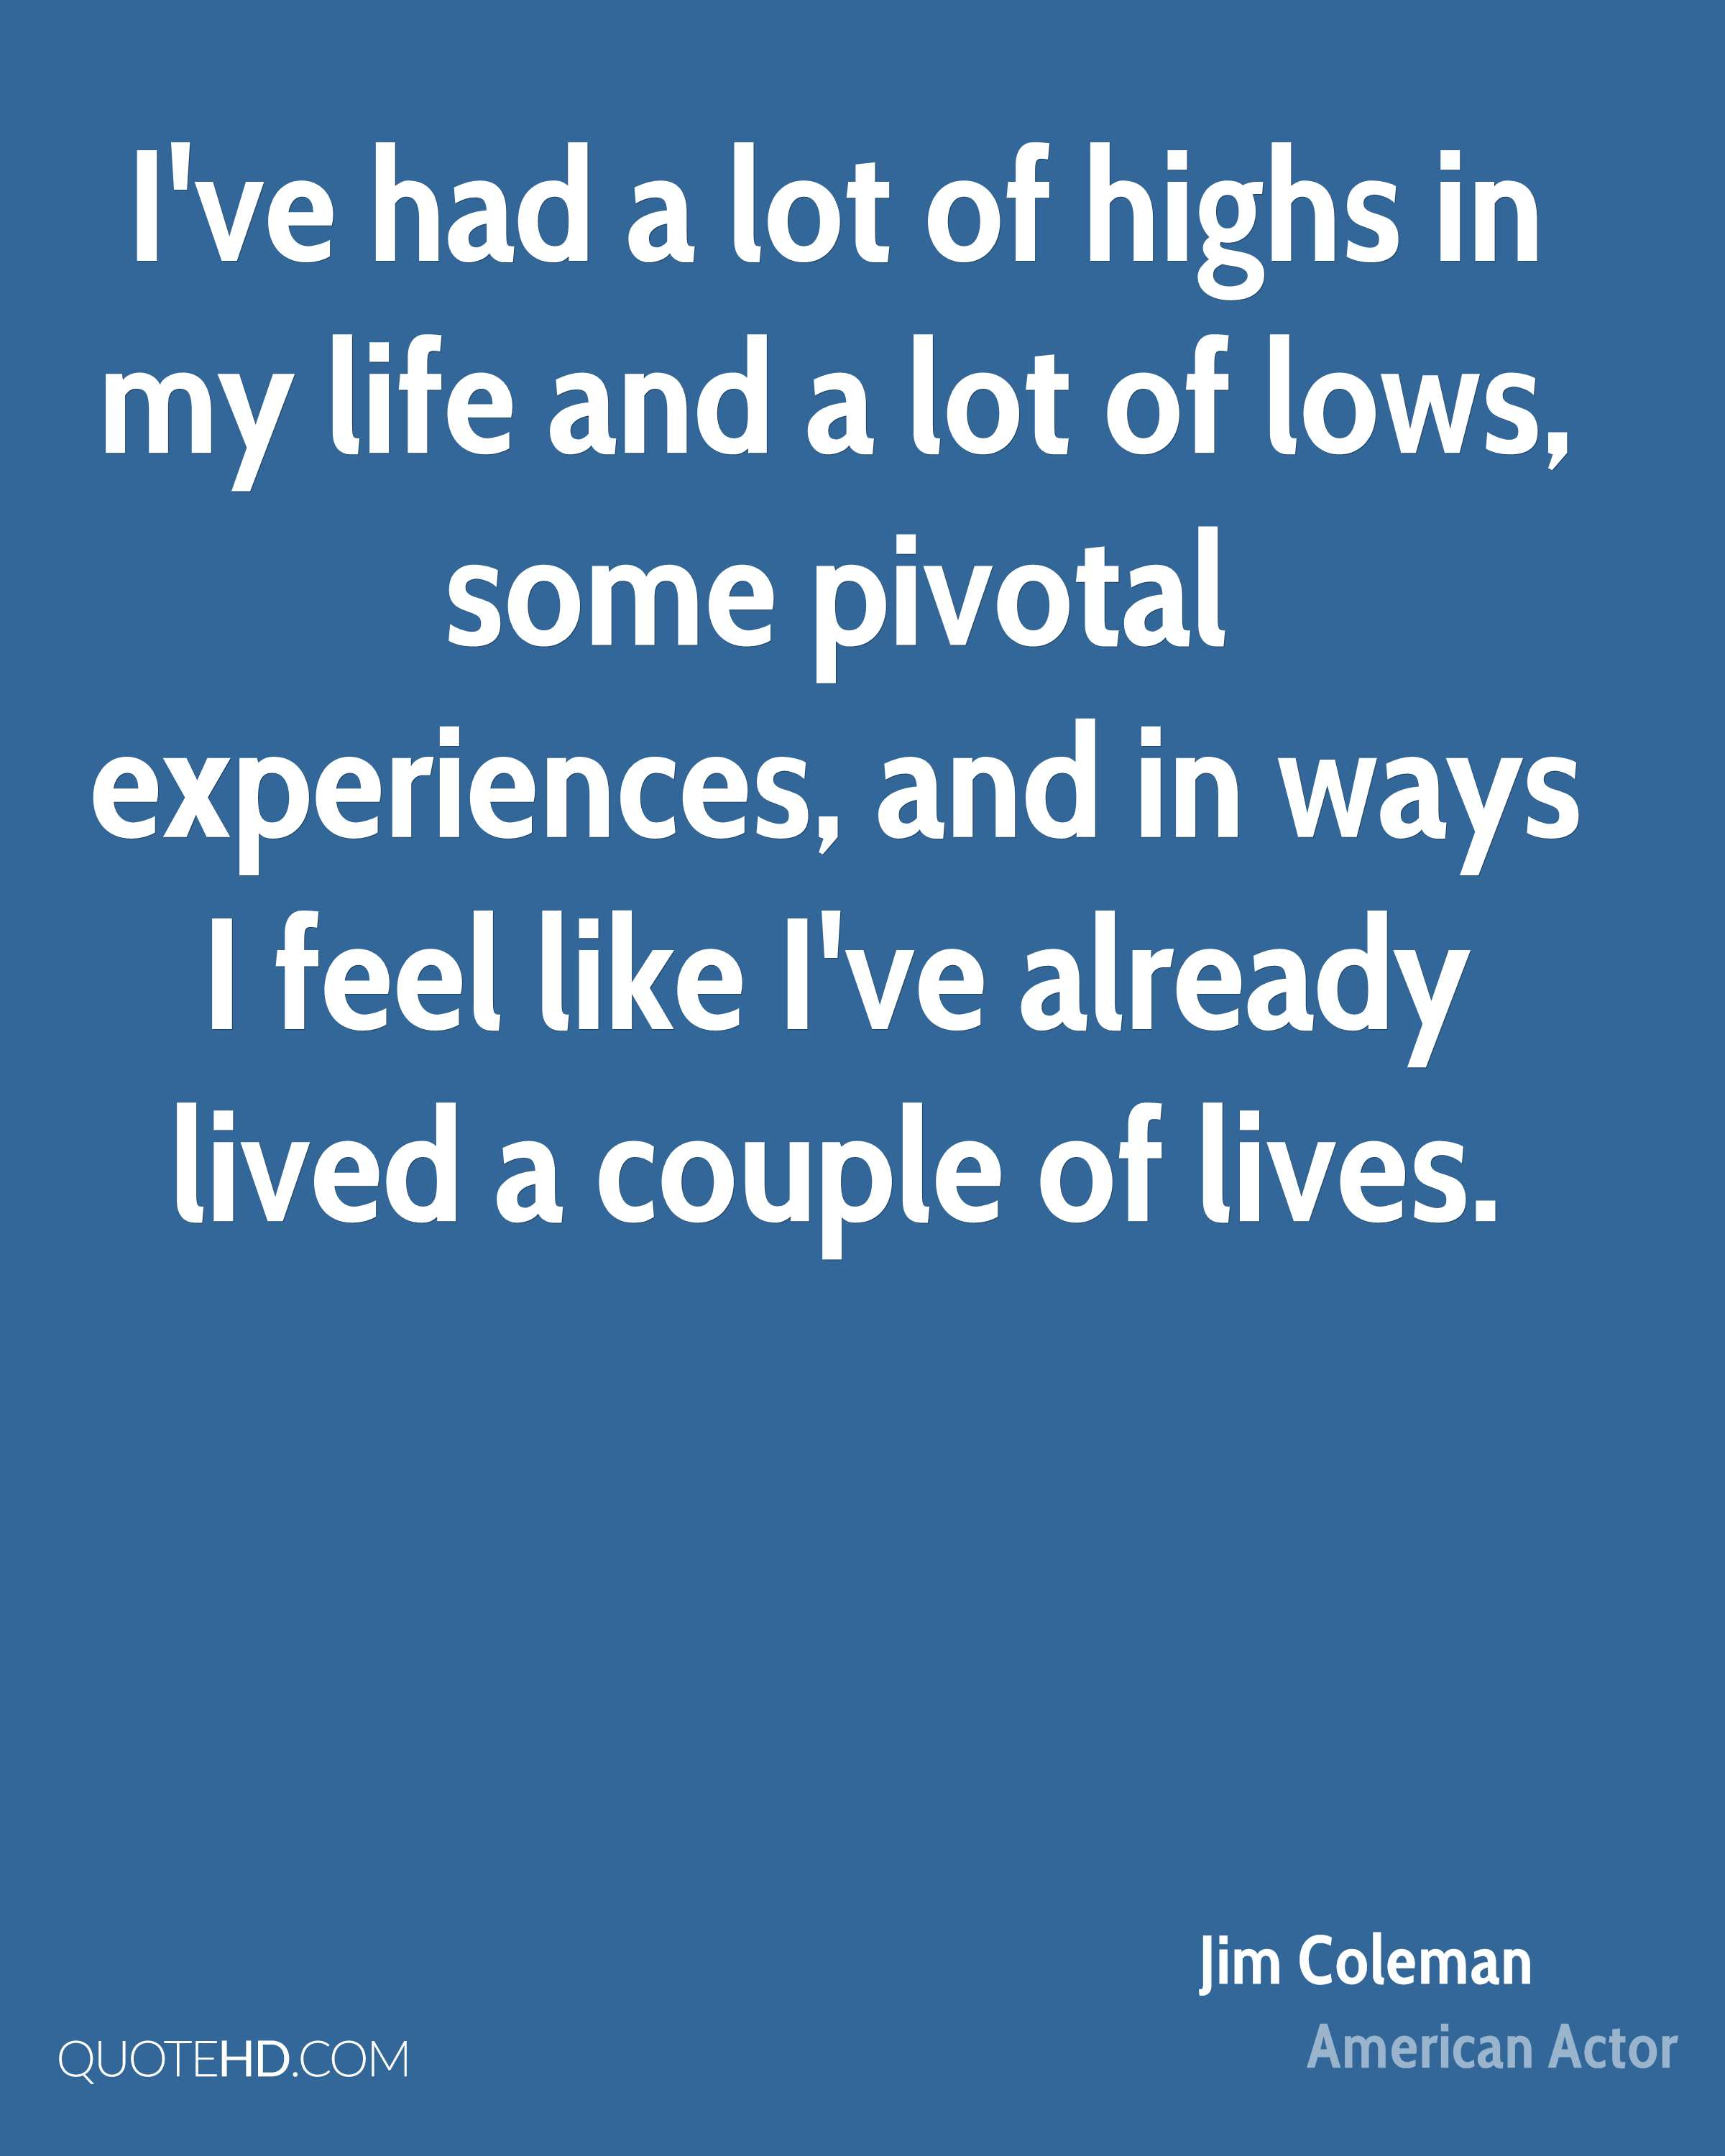 I've had a lot of highs in my life and a lot of lows, some pivotal experiences, and in ways I feel like I've already lived a couple of lives.